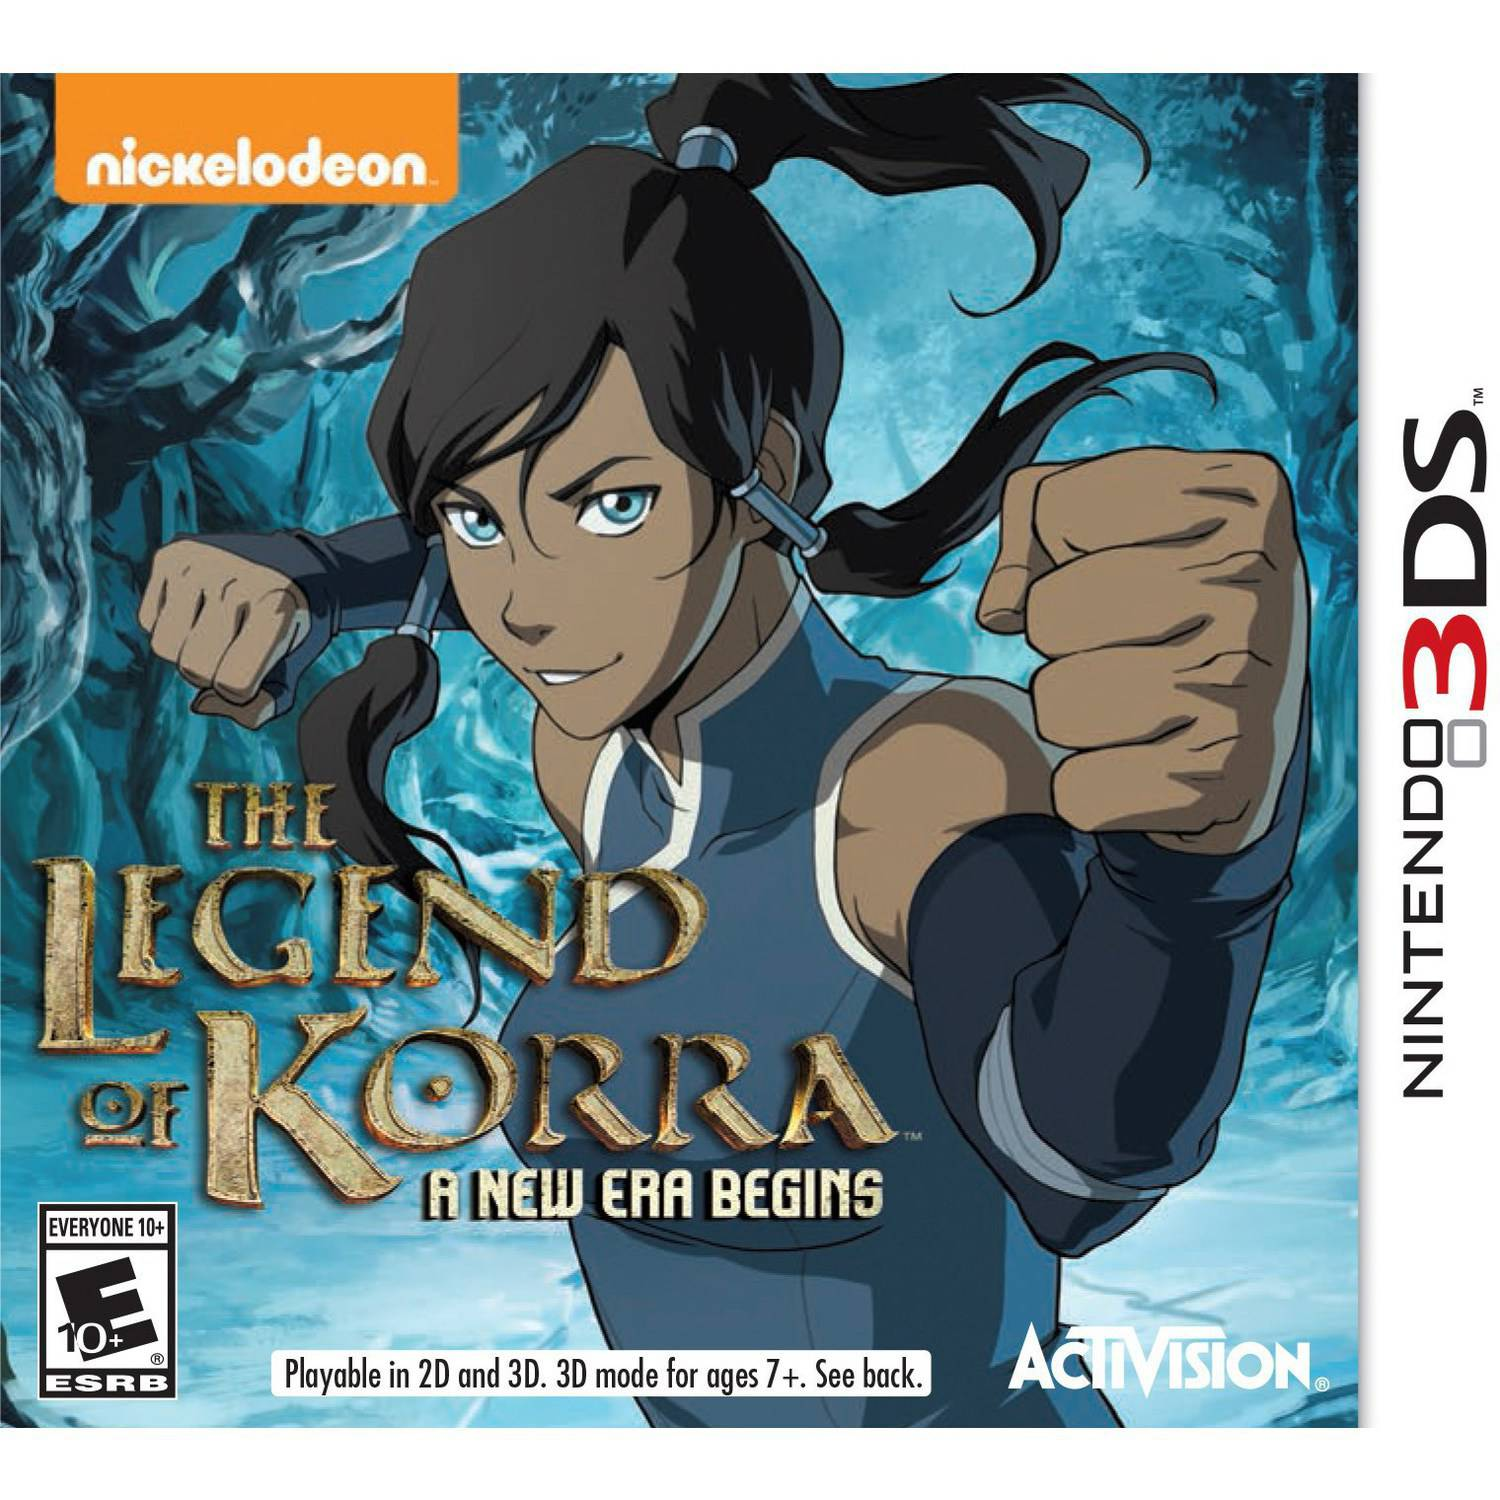 Legend Of Korra New Era Begins ((Nintendo 3DS) - Pre-Owned